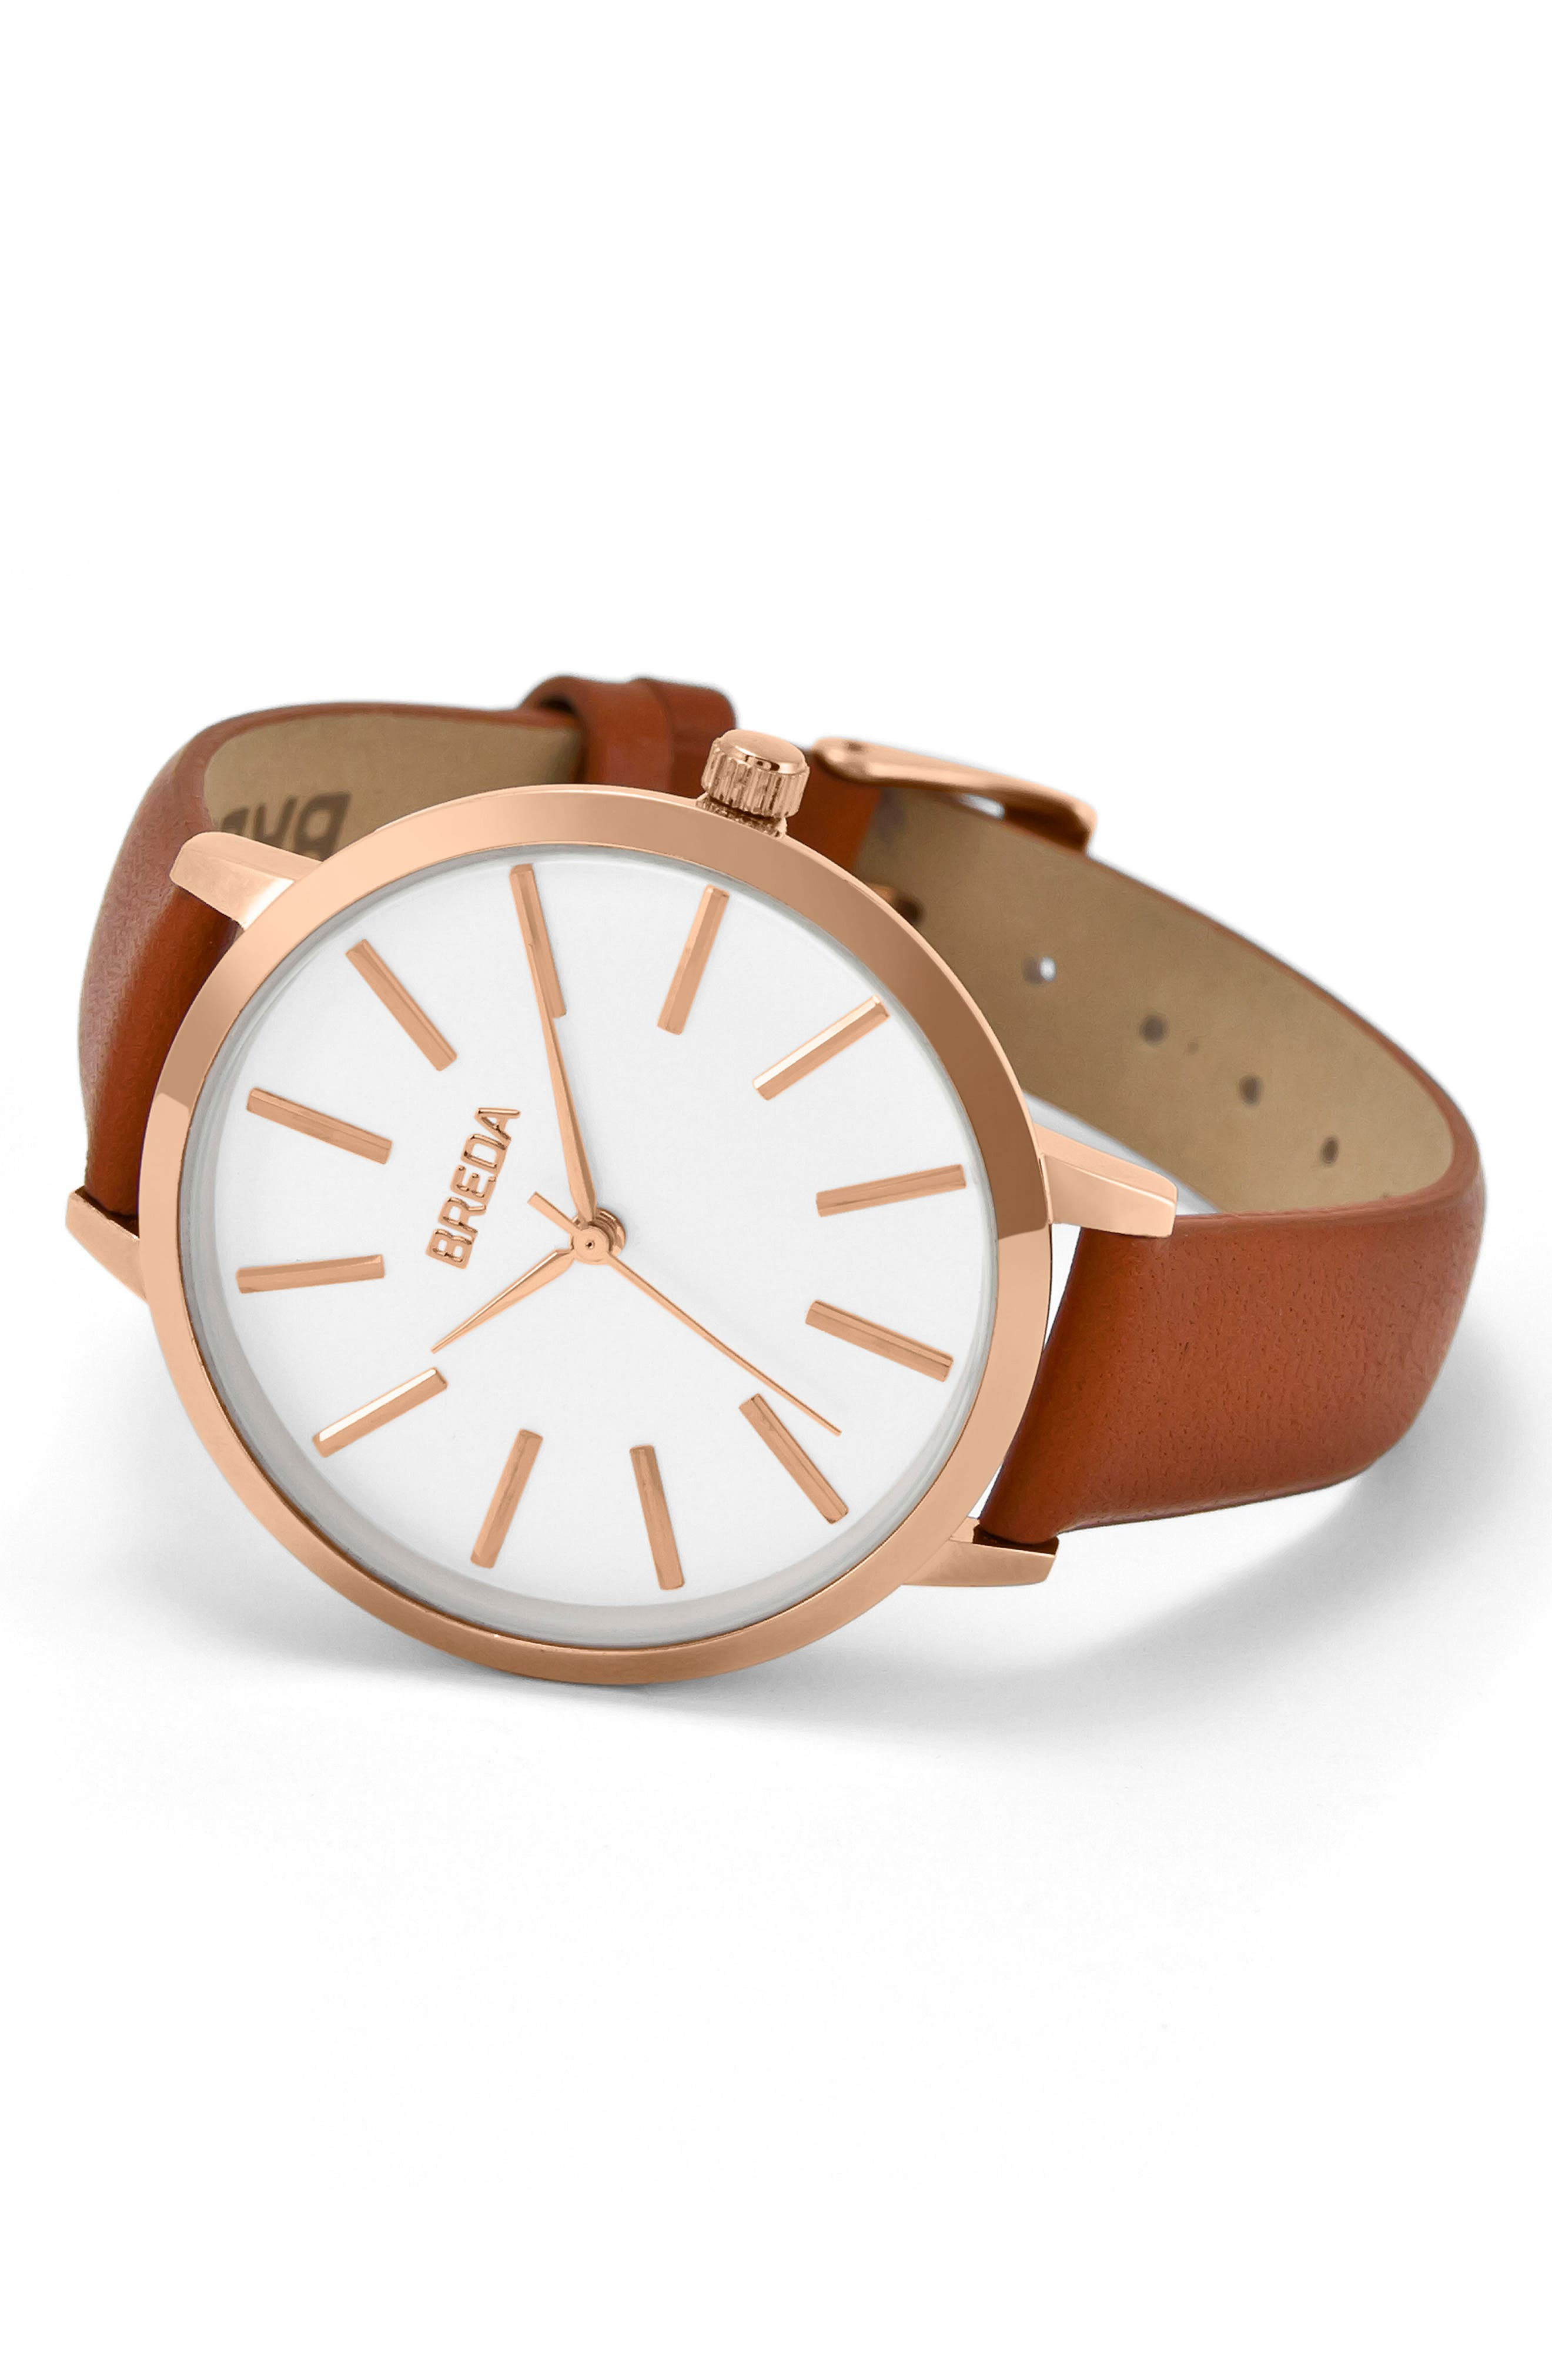 Joule Round Leather Strap Watch, 37mm,                             Alternate thumbnail 4, color,